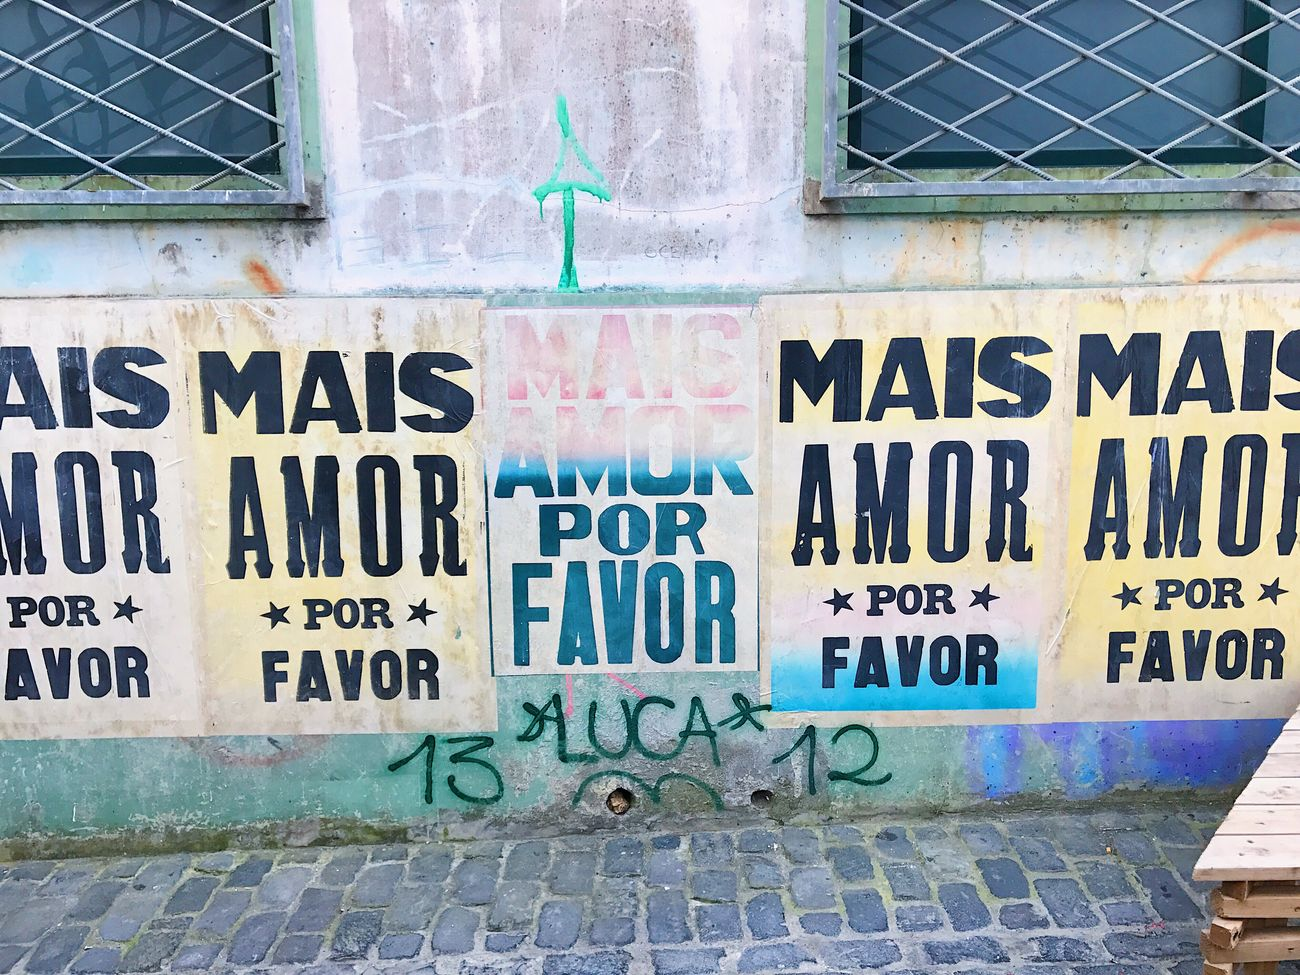 Text Communication No People Outdoors Brick Wall Morelove Poster Built Structure Community Outreach Day Azores City Ponta Delgada Close-up Building Exterior Architecture Spray Paint